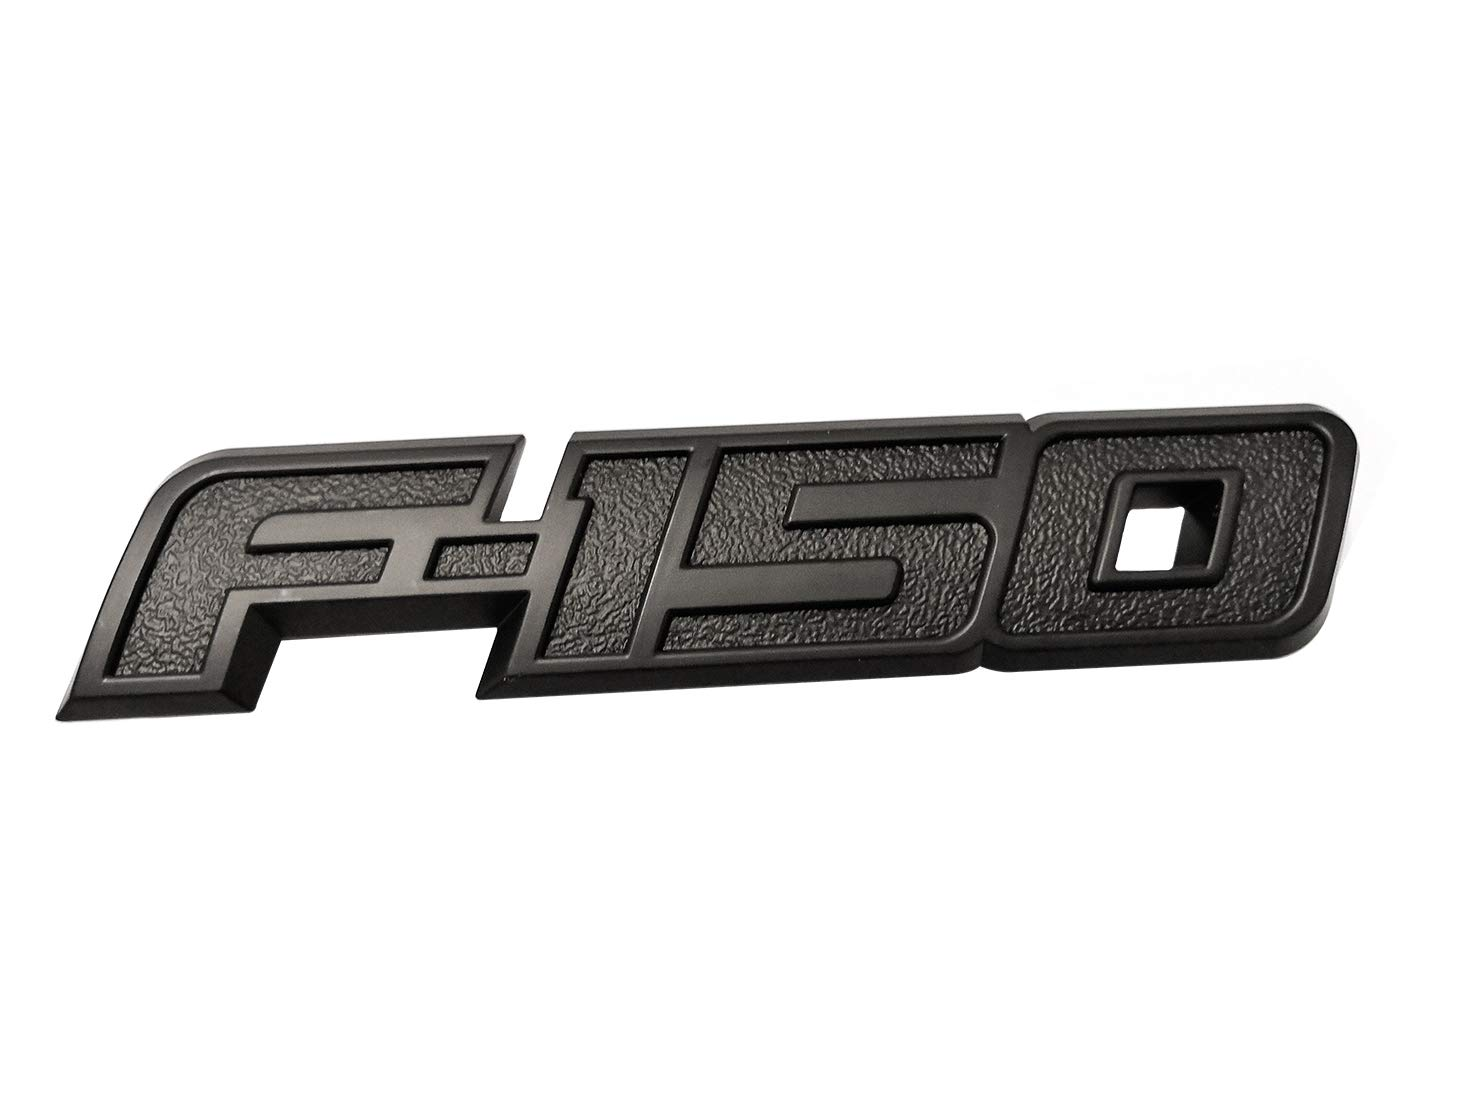 Black F-150 Rear Tailgate Emblem badge 3D Logo Replacement for Ford F150 2009-2014 Aruisi